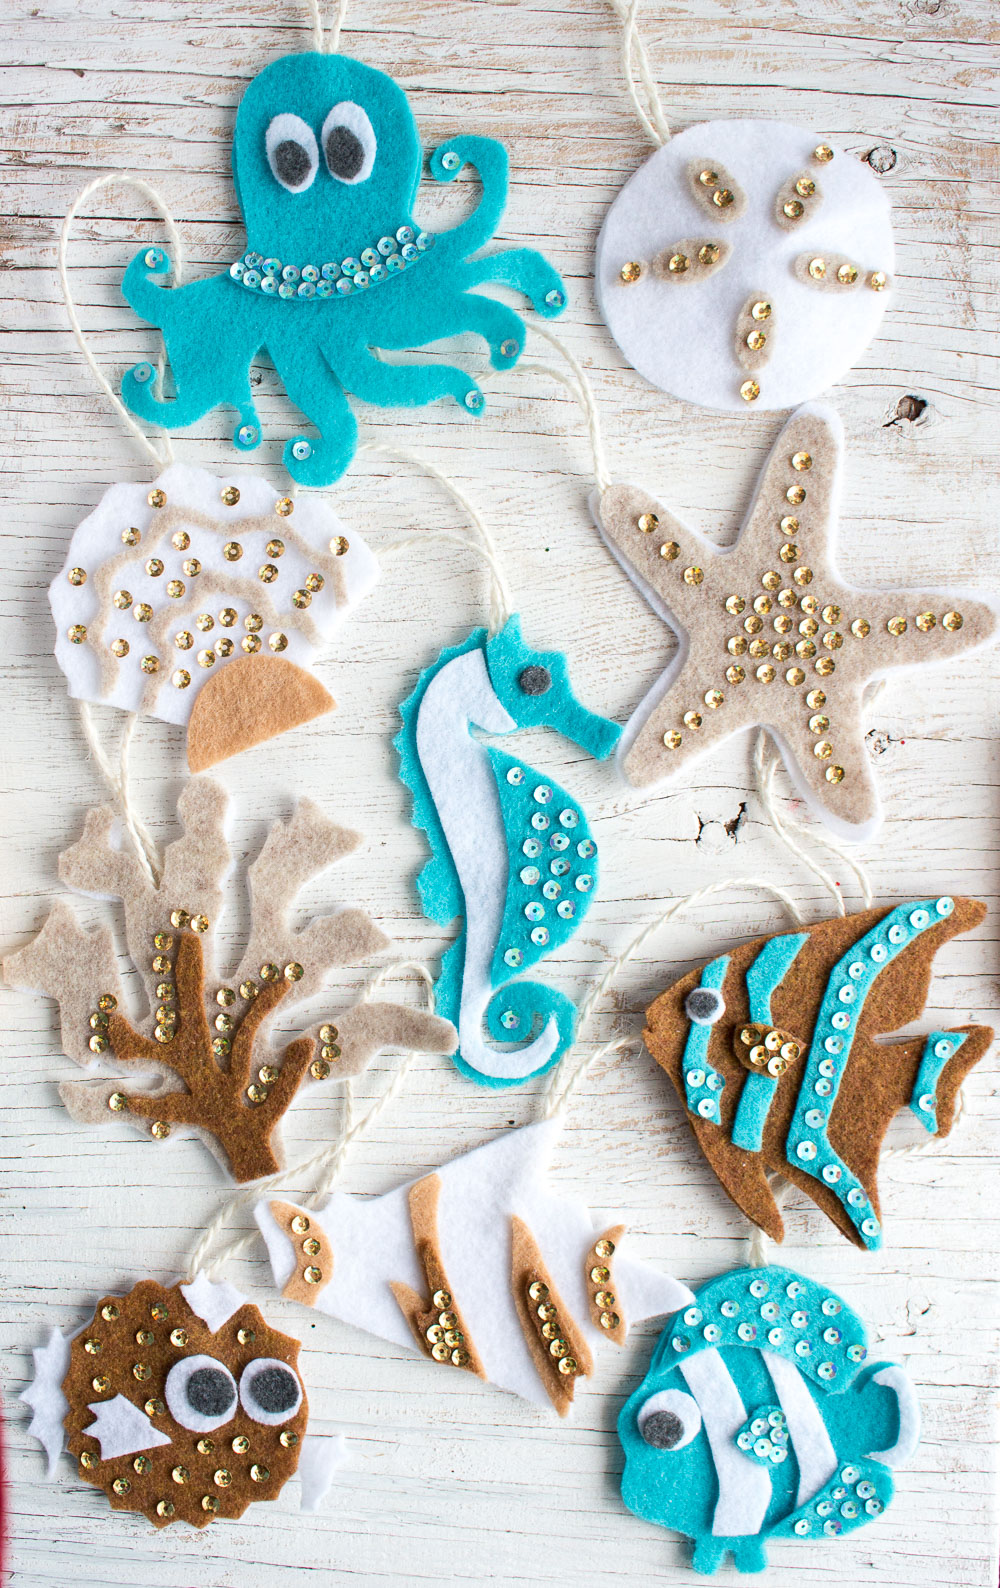 ocean life themed no sew felt ornament patterns